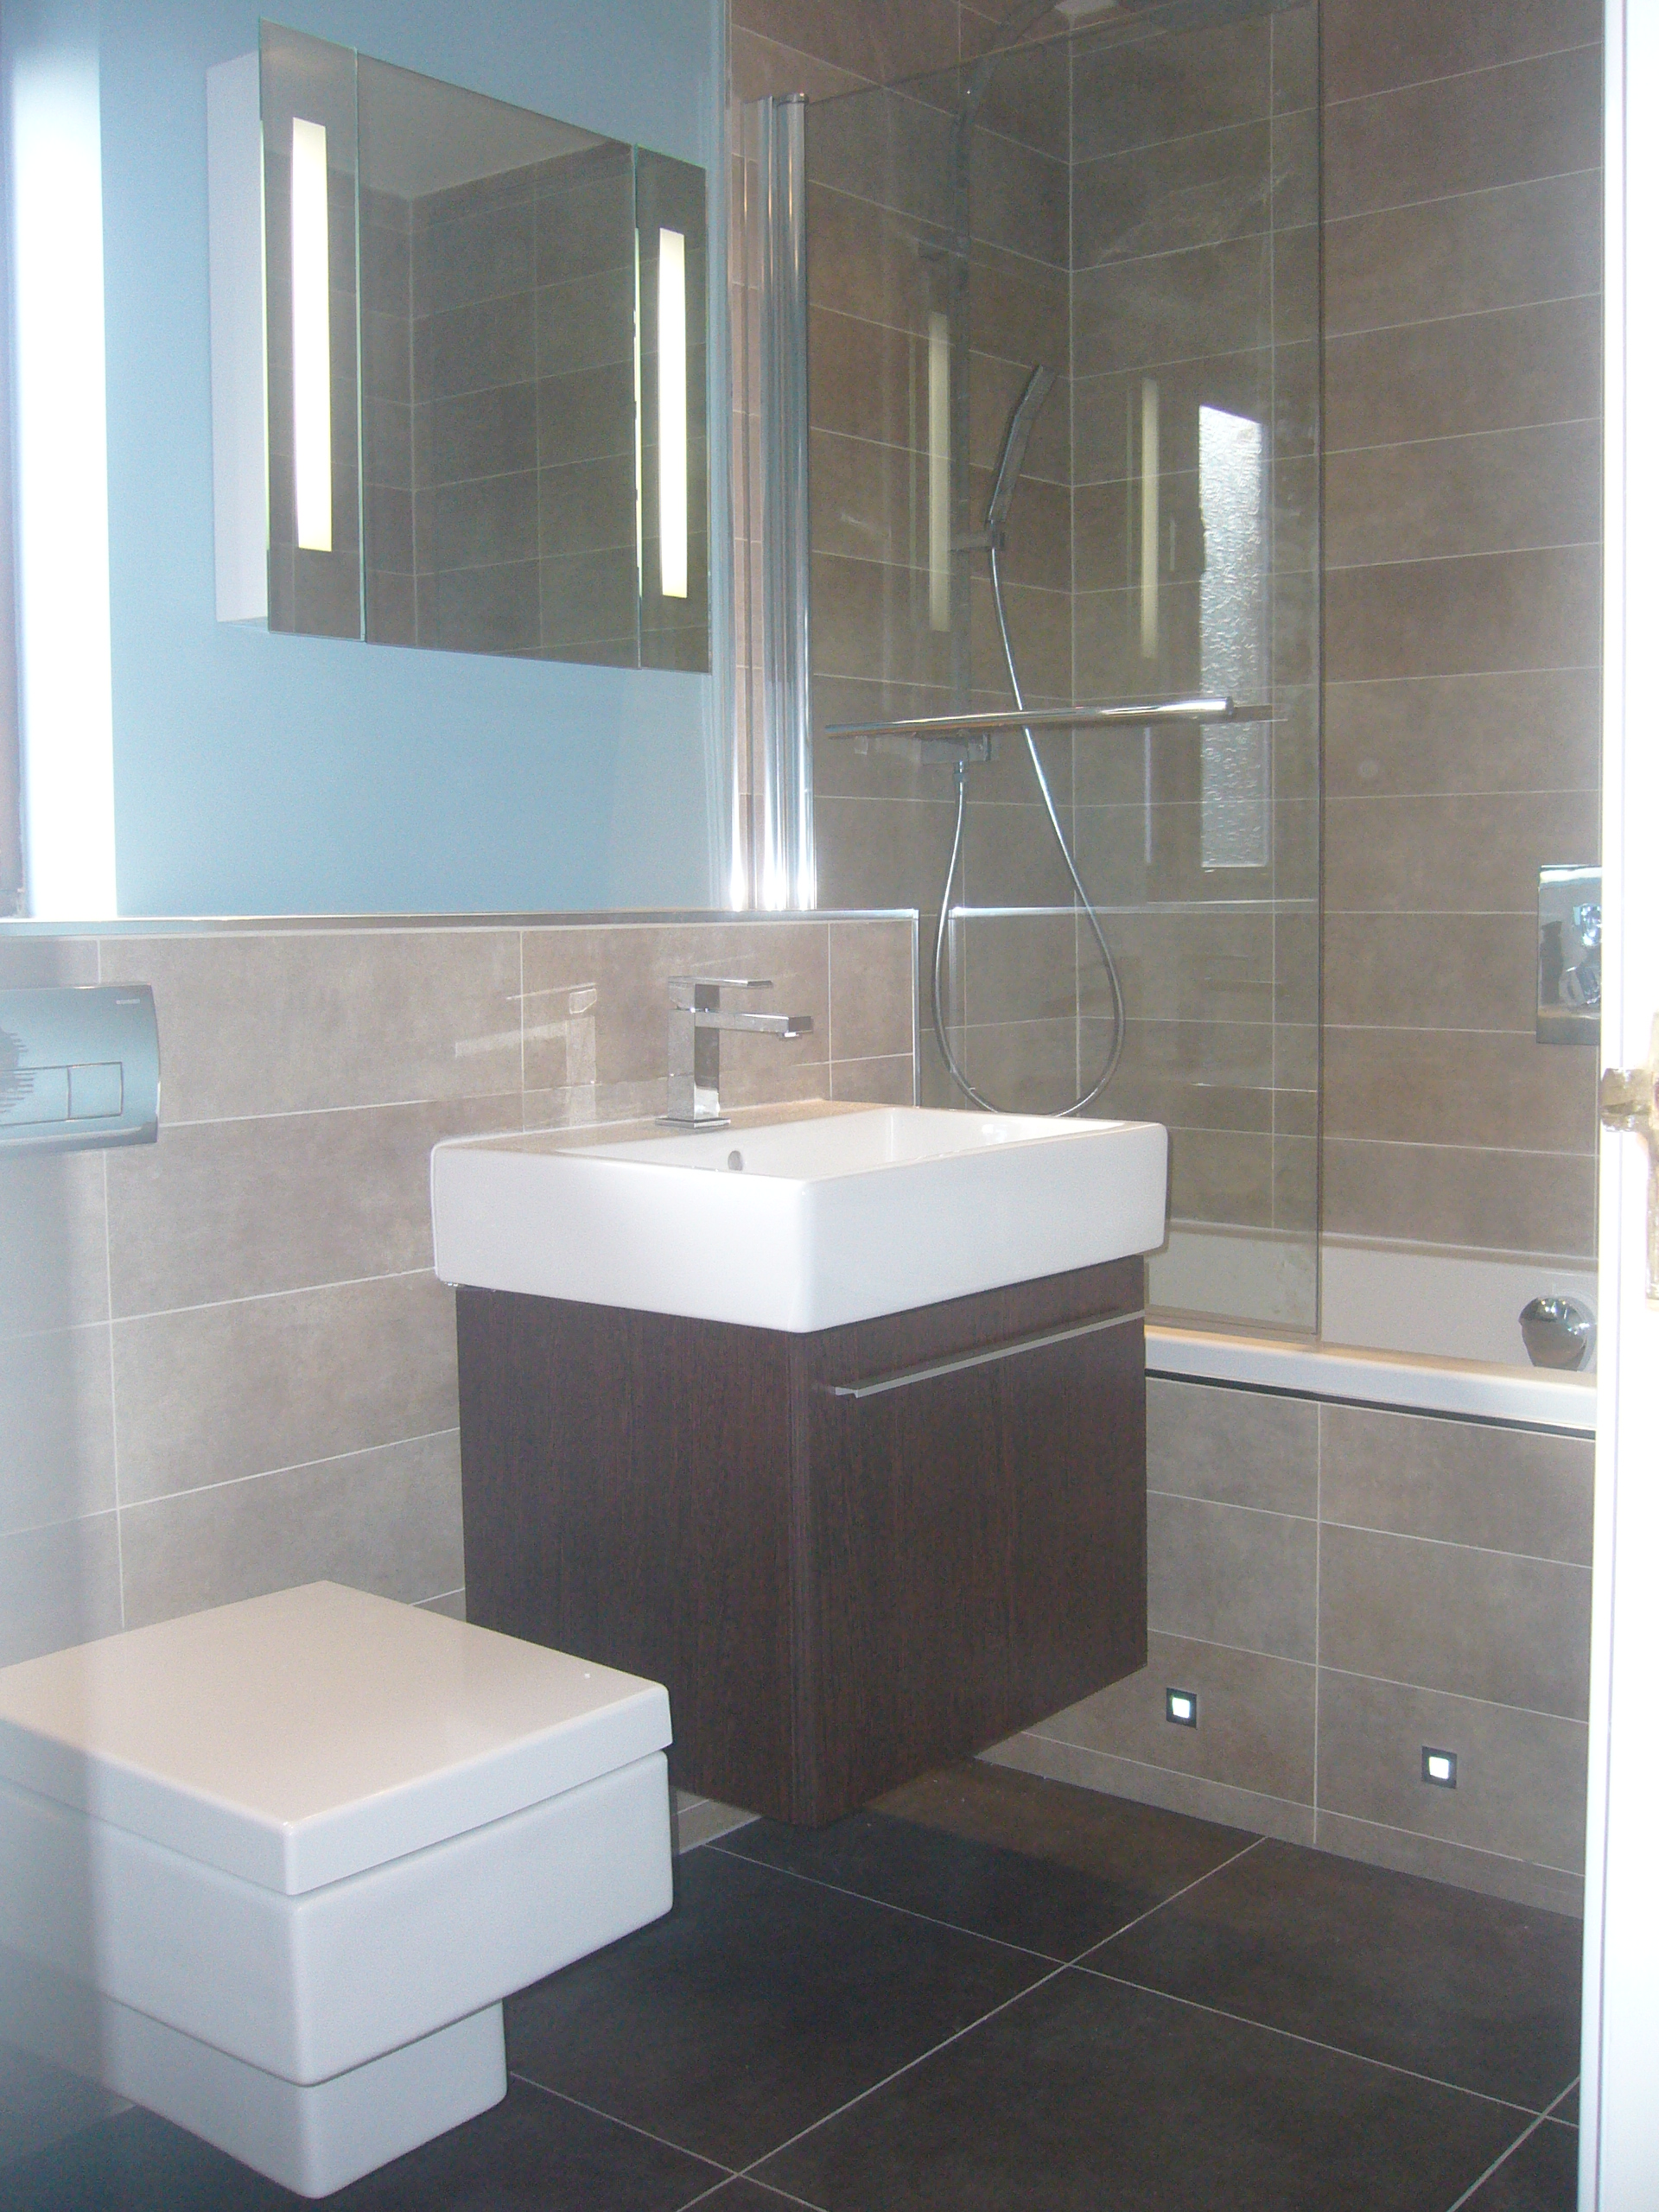 Gallery rivelin plumbing and heating sheffield for Bathroom examples